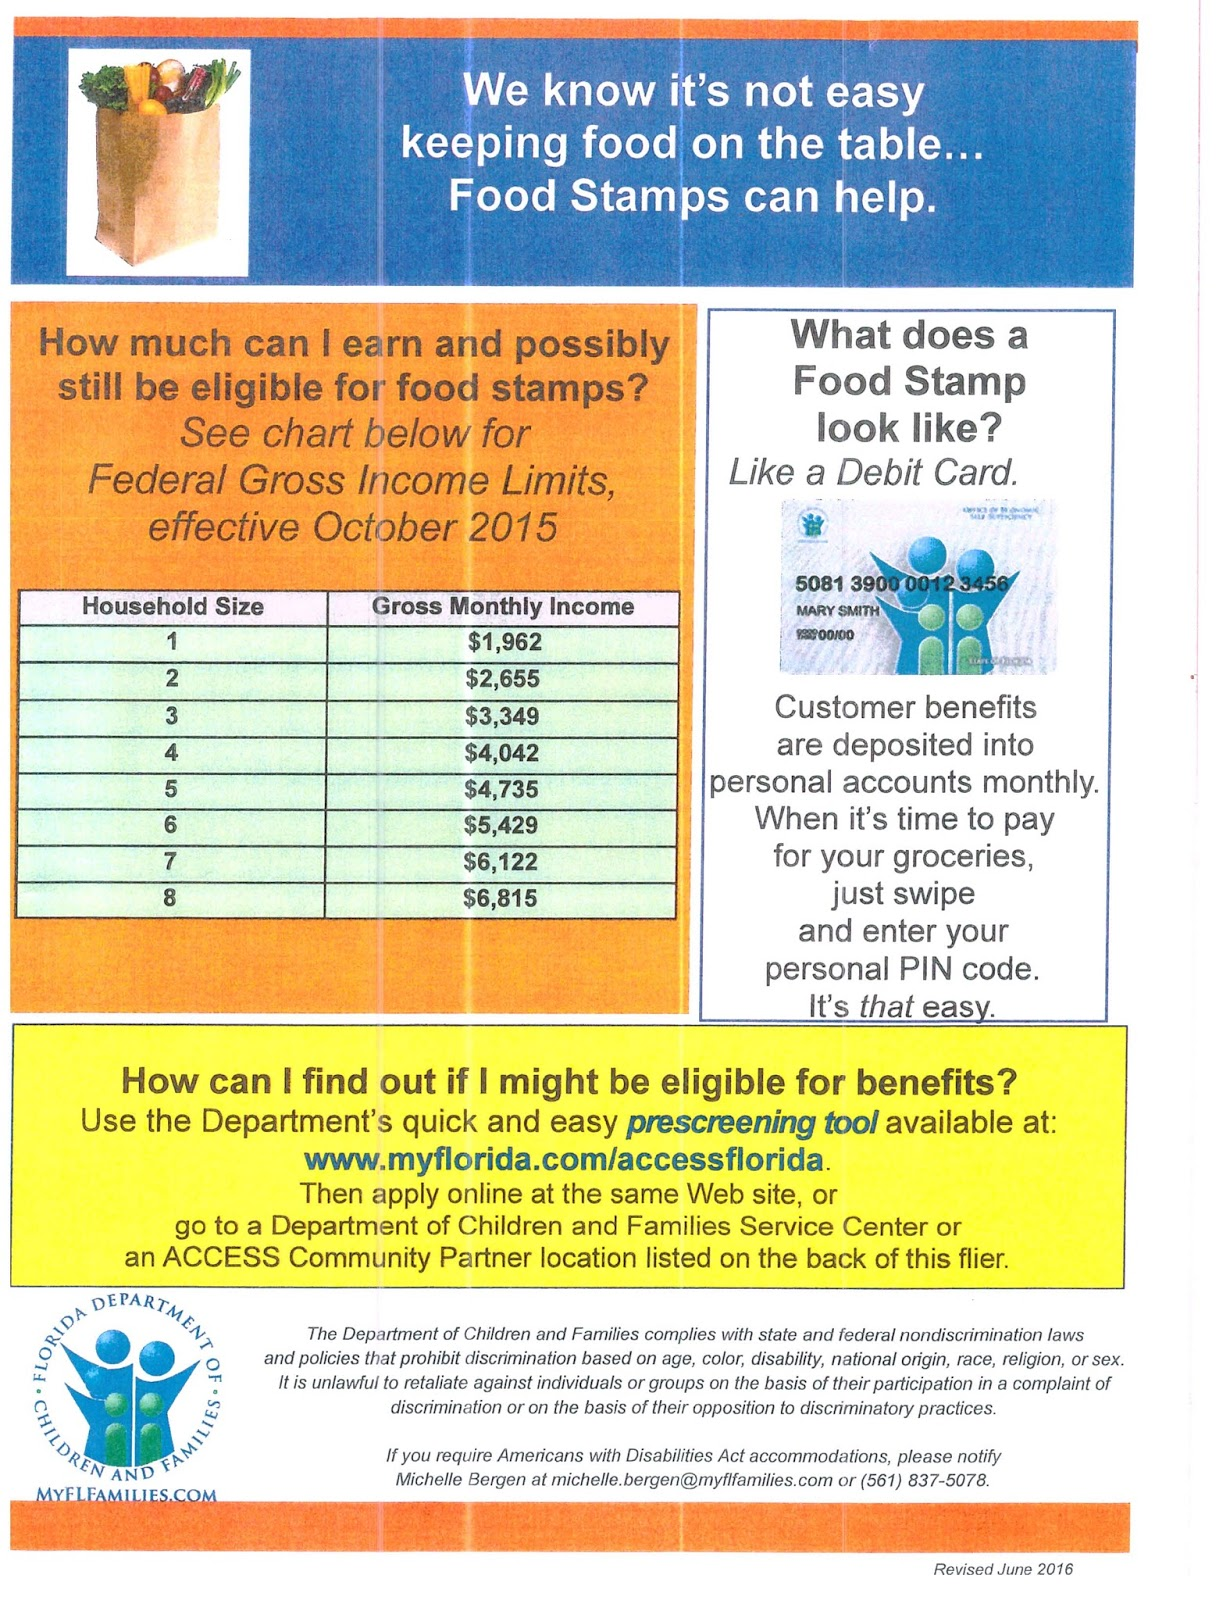 SNAP food stamps eligibility tool